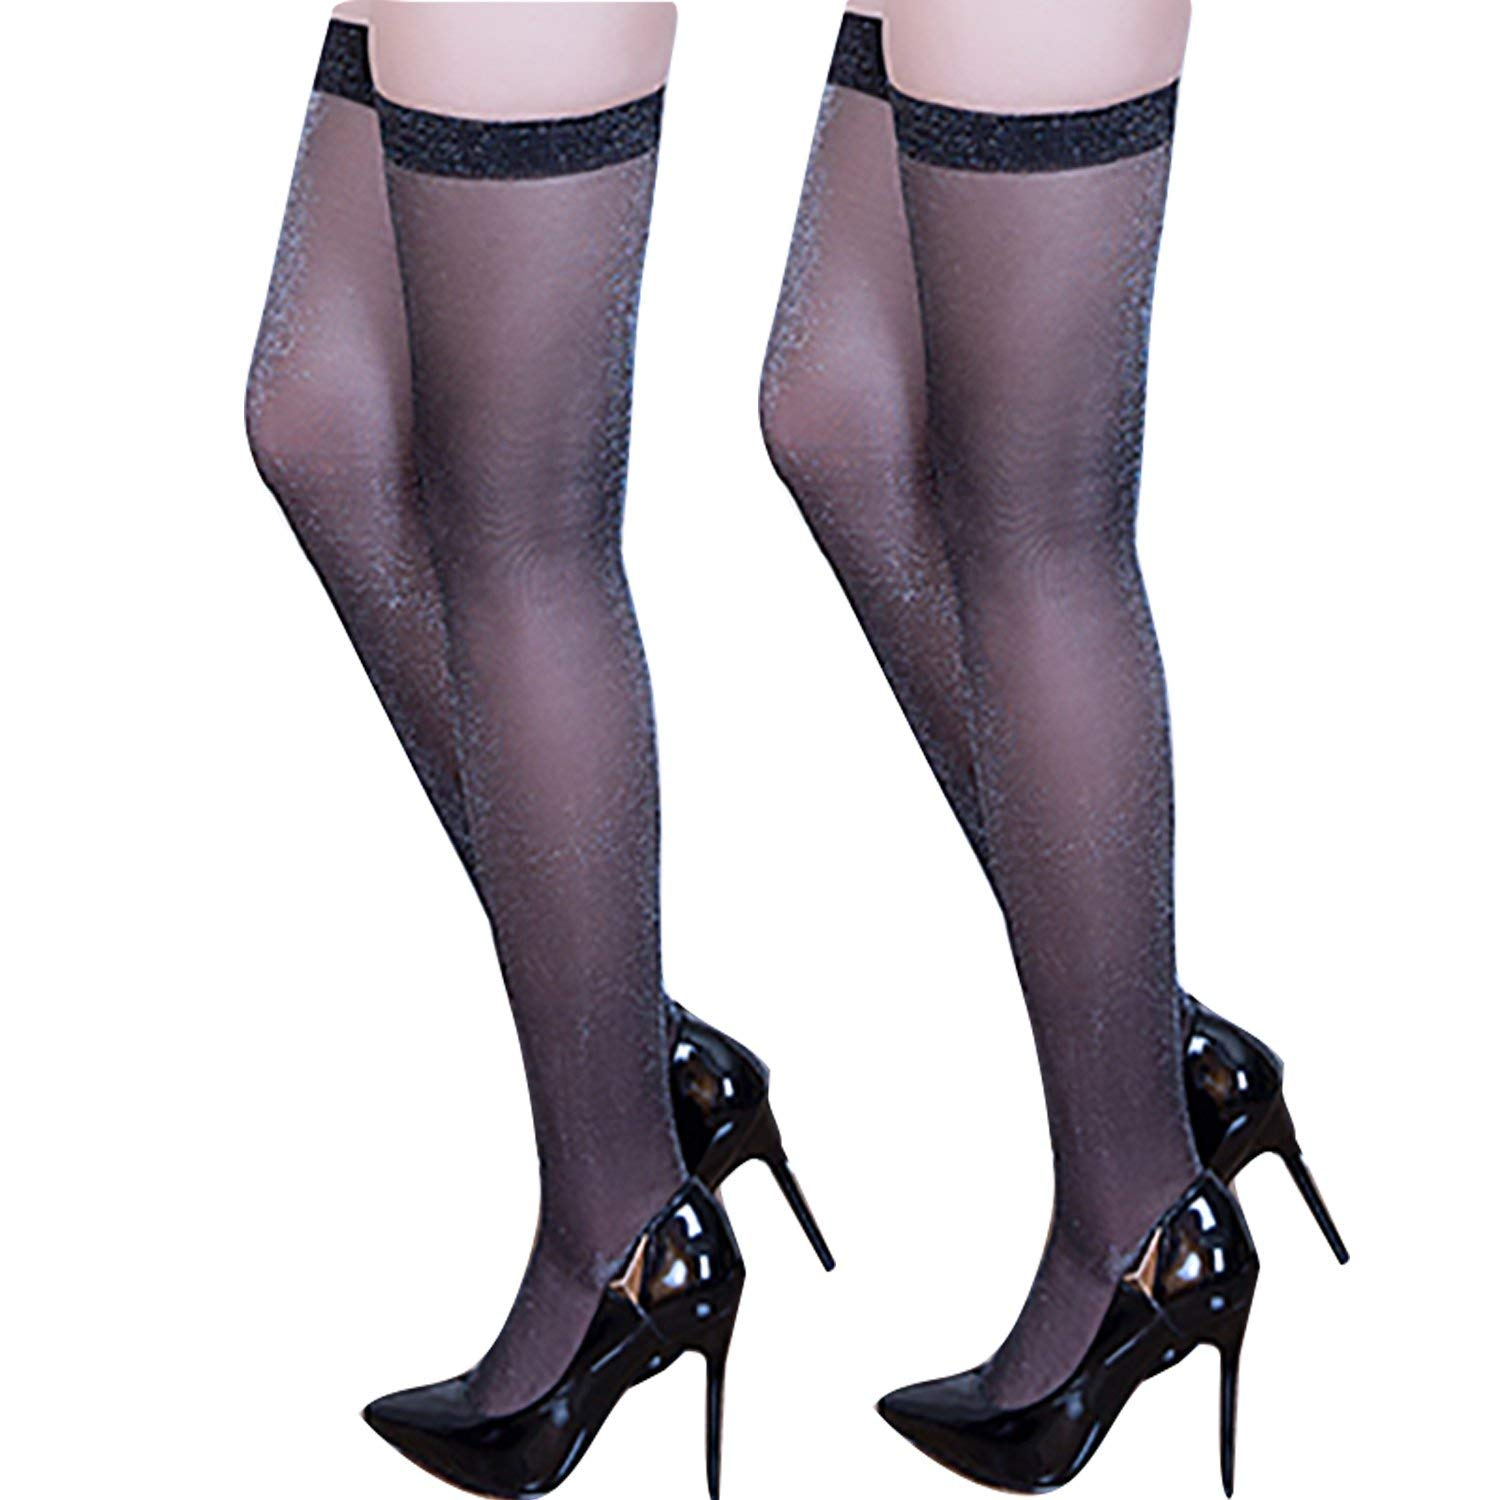 52b8e59e2 Get Quotations · MILIAN Sexy Sparkly Shiny Thigh High Stockings - Silk Over  Knee Stockings for Party or Dance